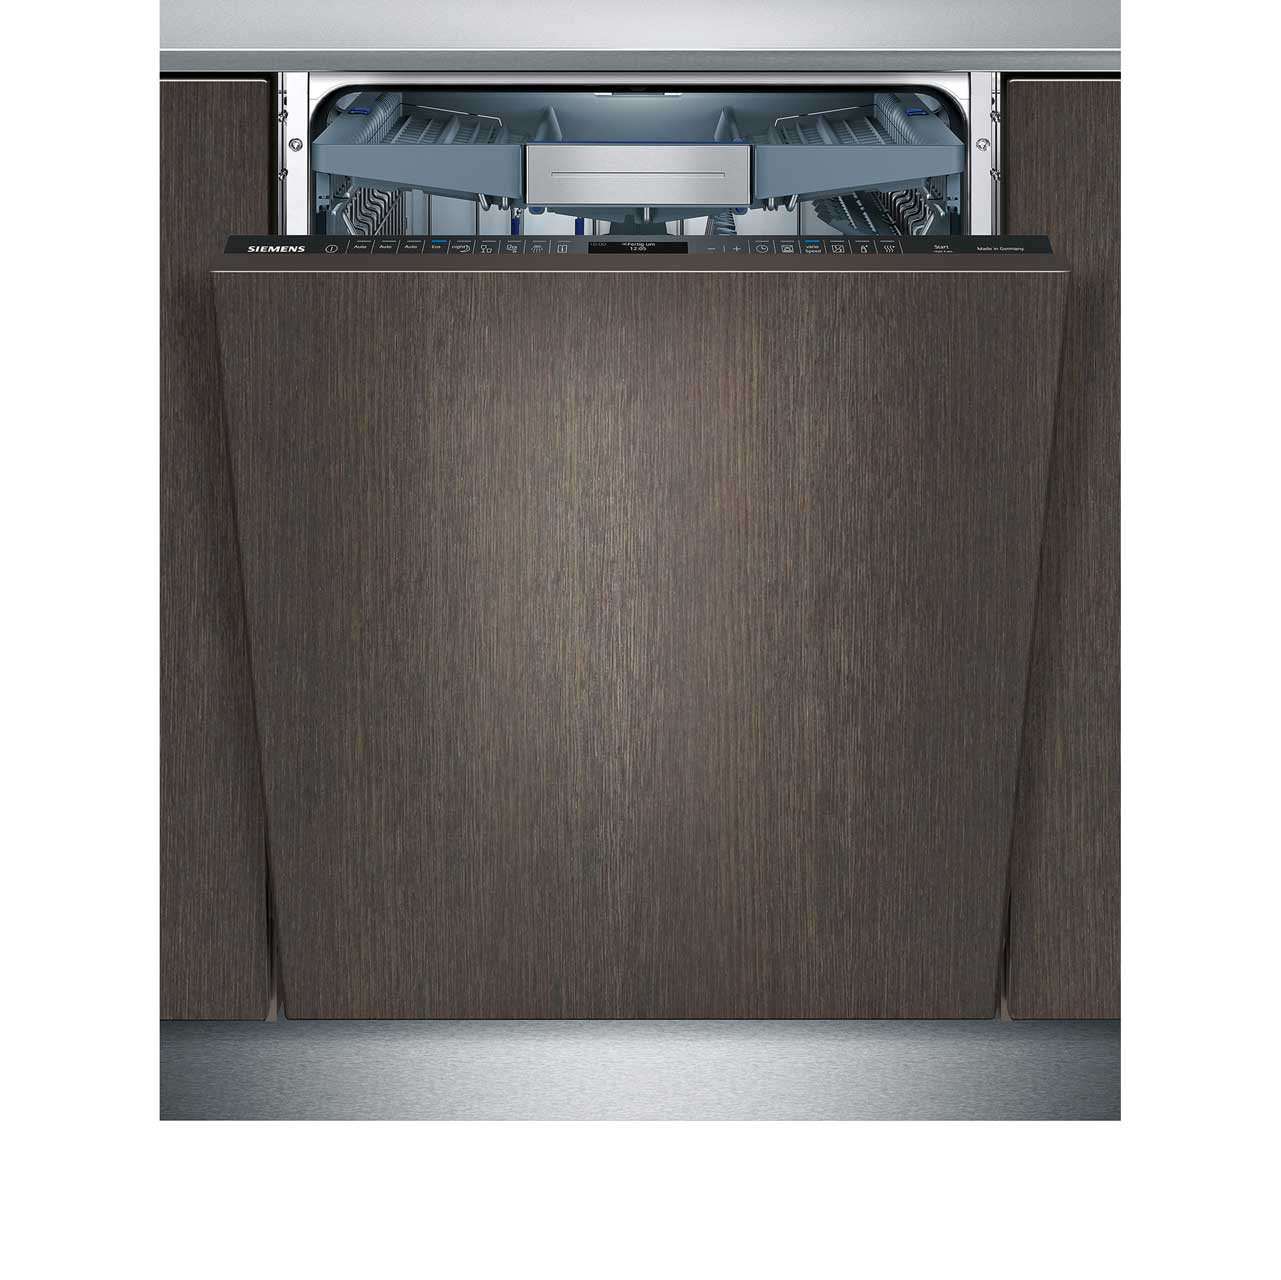 Siemens IQ700 Extra Height SX778D00TG Integrated Dishwasher in Black